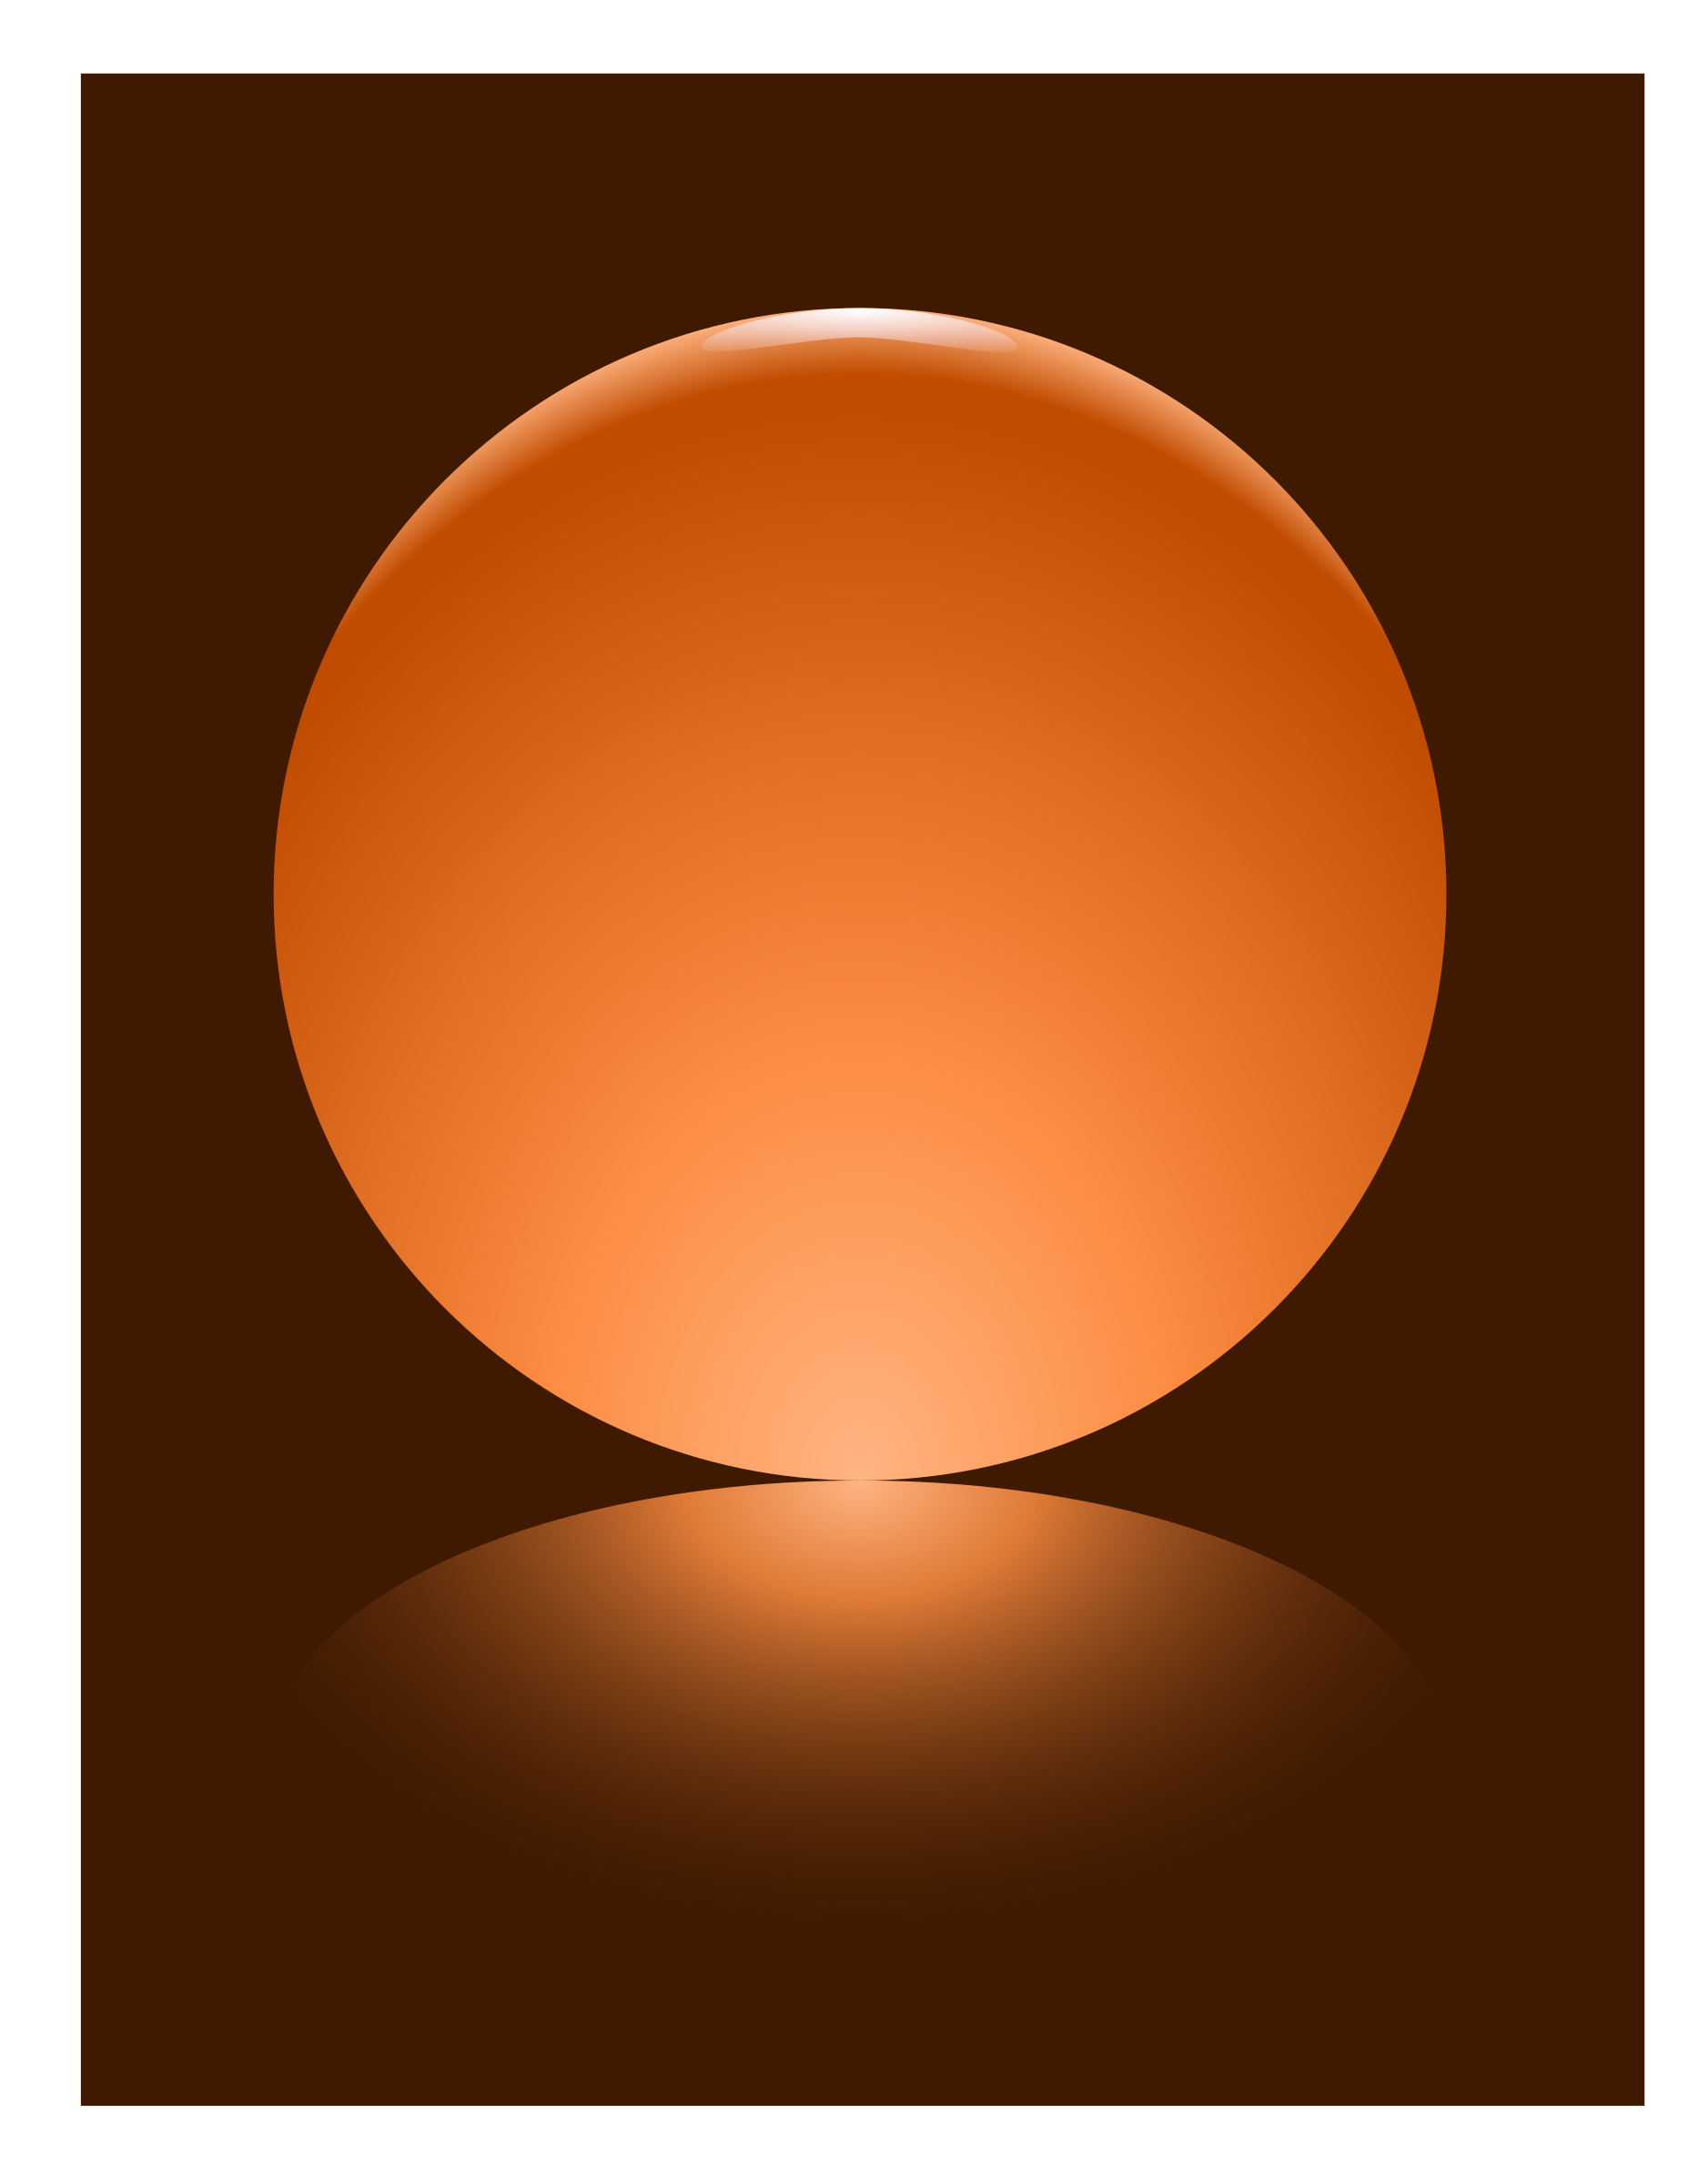 Orange Sphere by djpaul